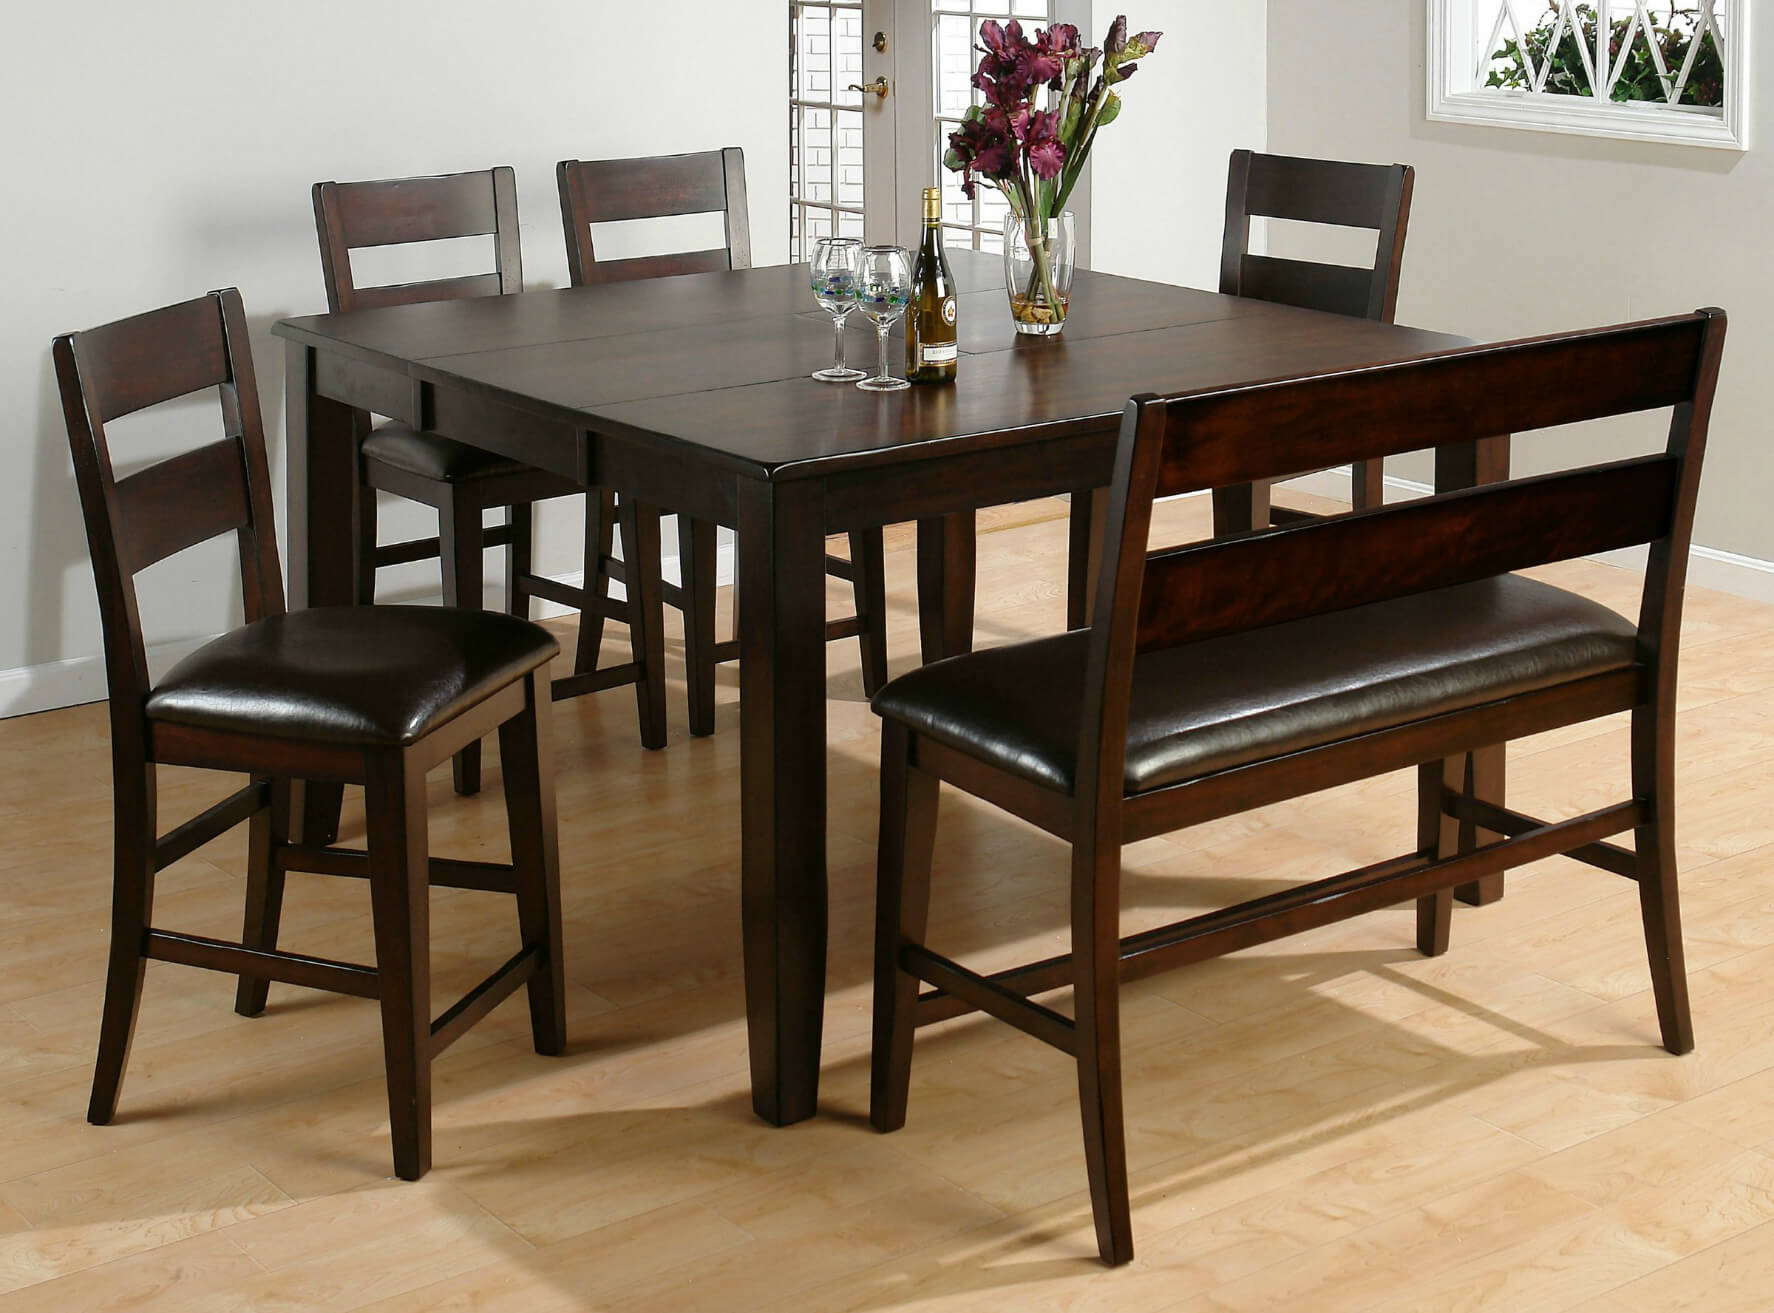 Here\u0027s a counter height square dining room table with bench. Moreover the bench includes & 26 Dining Room Sets (Big and Small) with Bench Seating (2018)